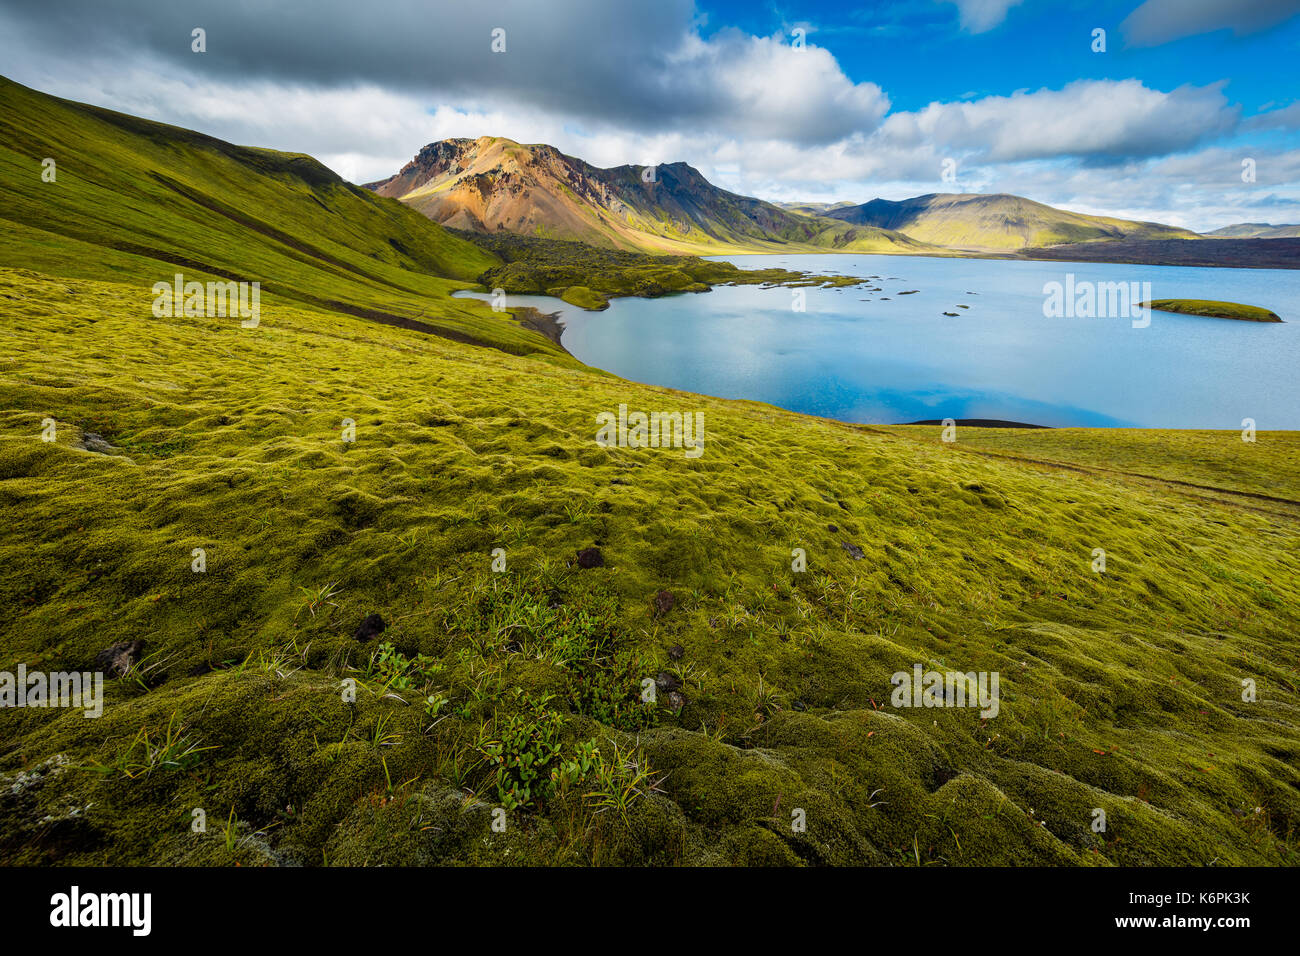 Frostastaðavatn (Icelandic for lake of the frosty place) is a lake in Iceland. It is situated in the Highlands of Iceland, not far from the famous mou - Stock Image